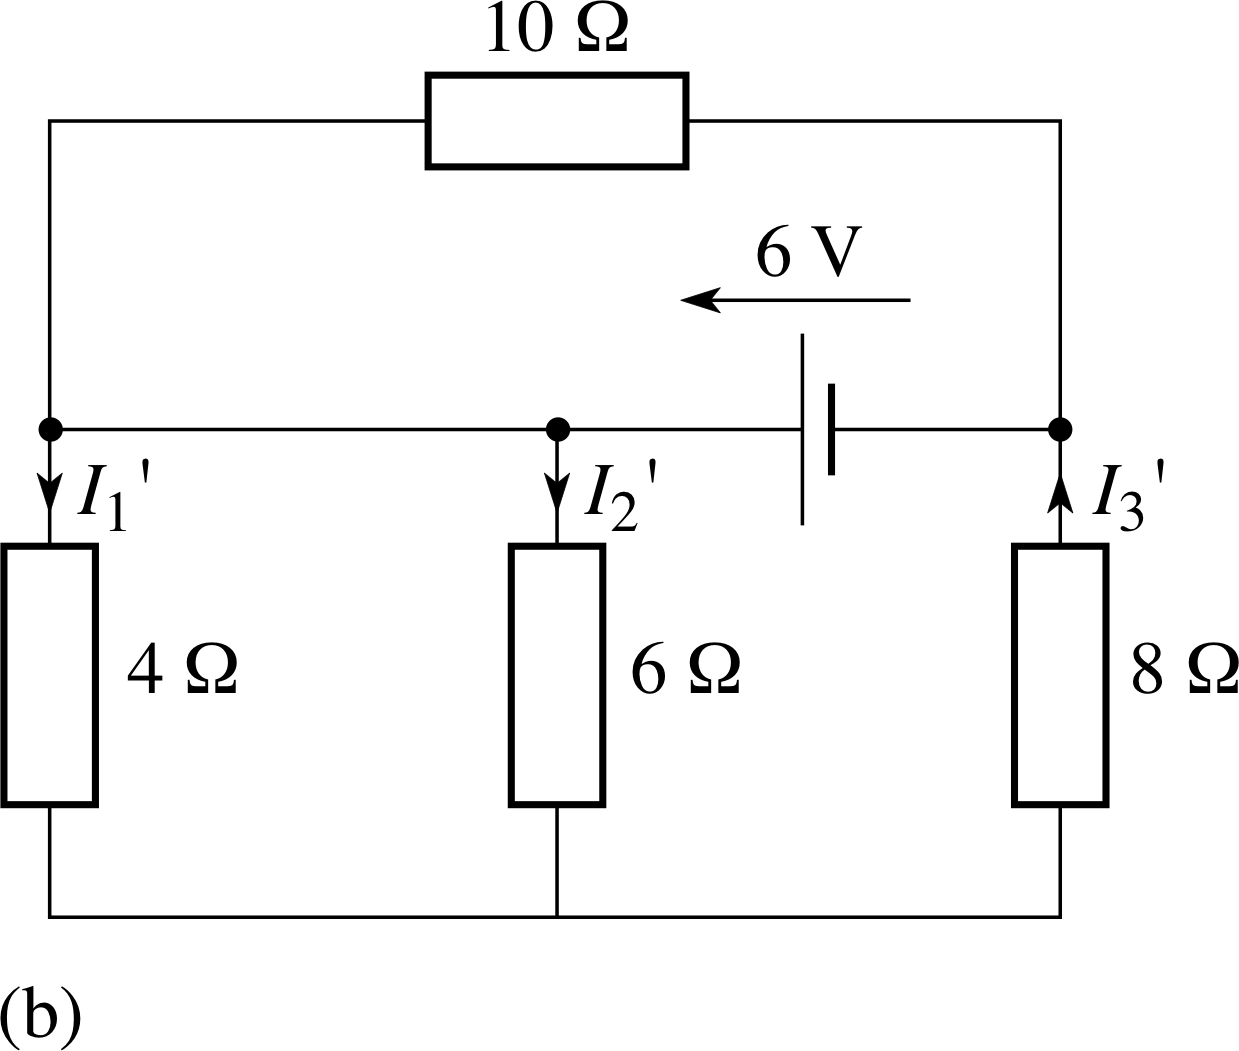 Pplato Flap Phys 41 Dc Circuits And Currents Wish To Calculate The Total Circuit Resistance Current Figure